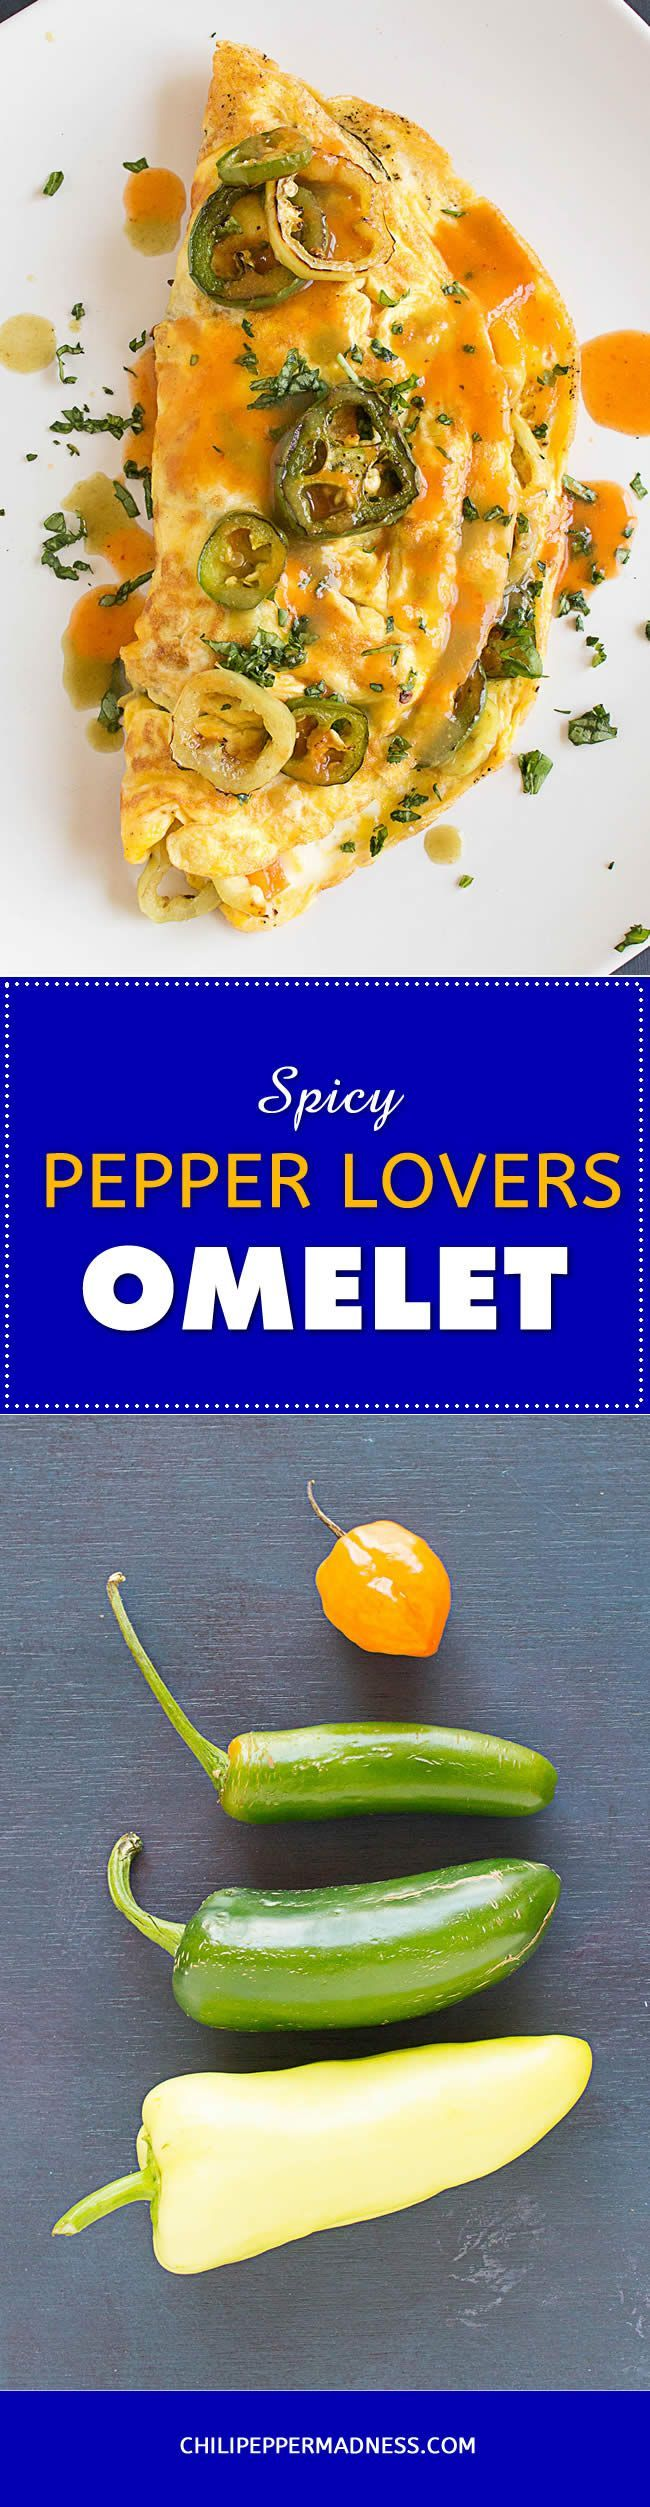 Spicy Pepper Lovers Omelet - An omelet recipe for the true chilihead made with silky eggs, cheddar cheese and a mixture of sauteed chili peppers, including flavorful jalapenos, spicy serranos, and fiery habanero peppers, all topped with your favorite hot sauce. #peppers #spicy #breakfast #omelet #recipe